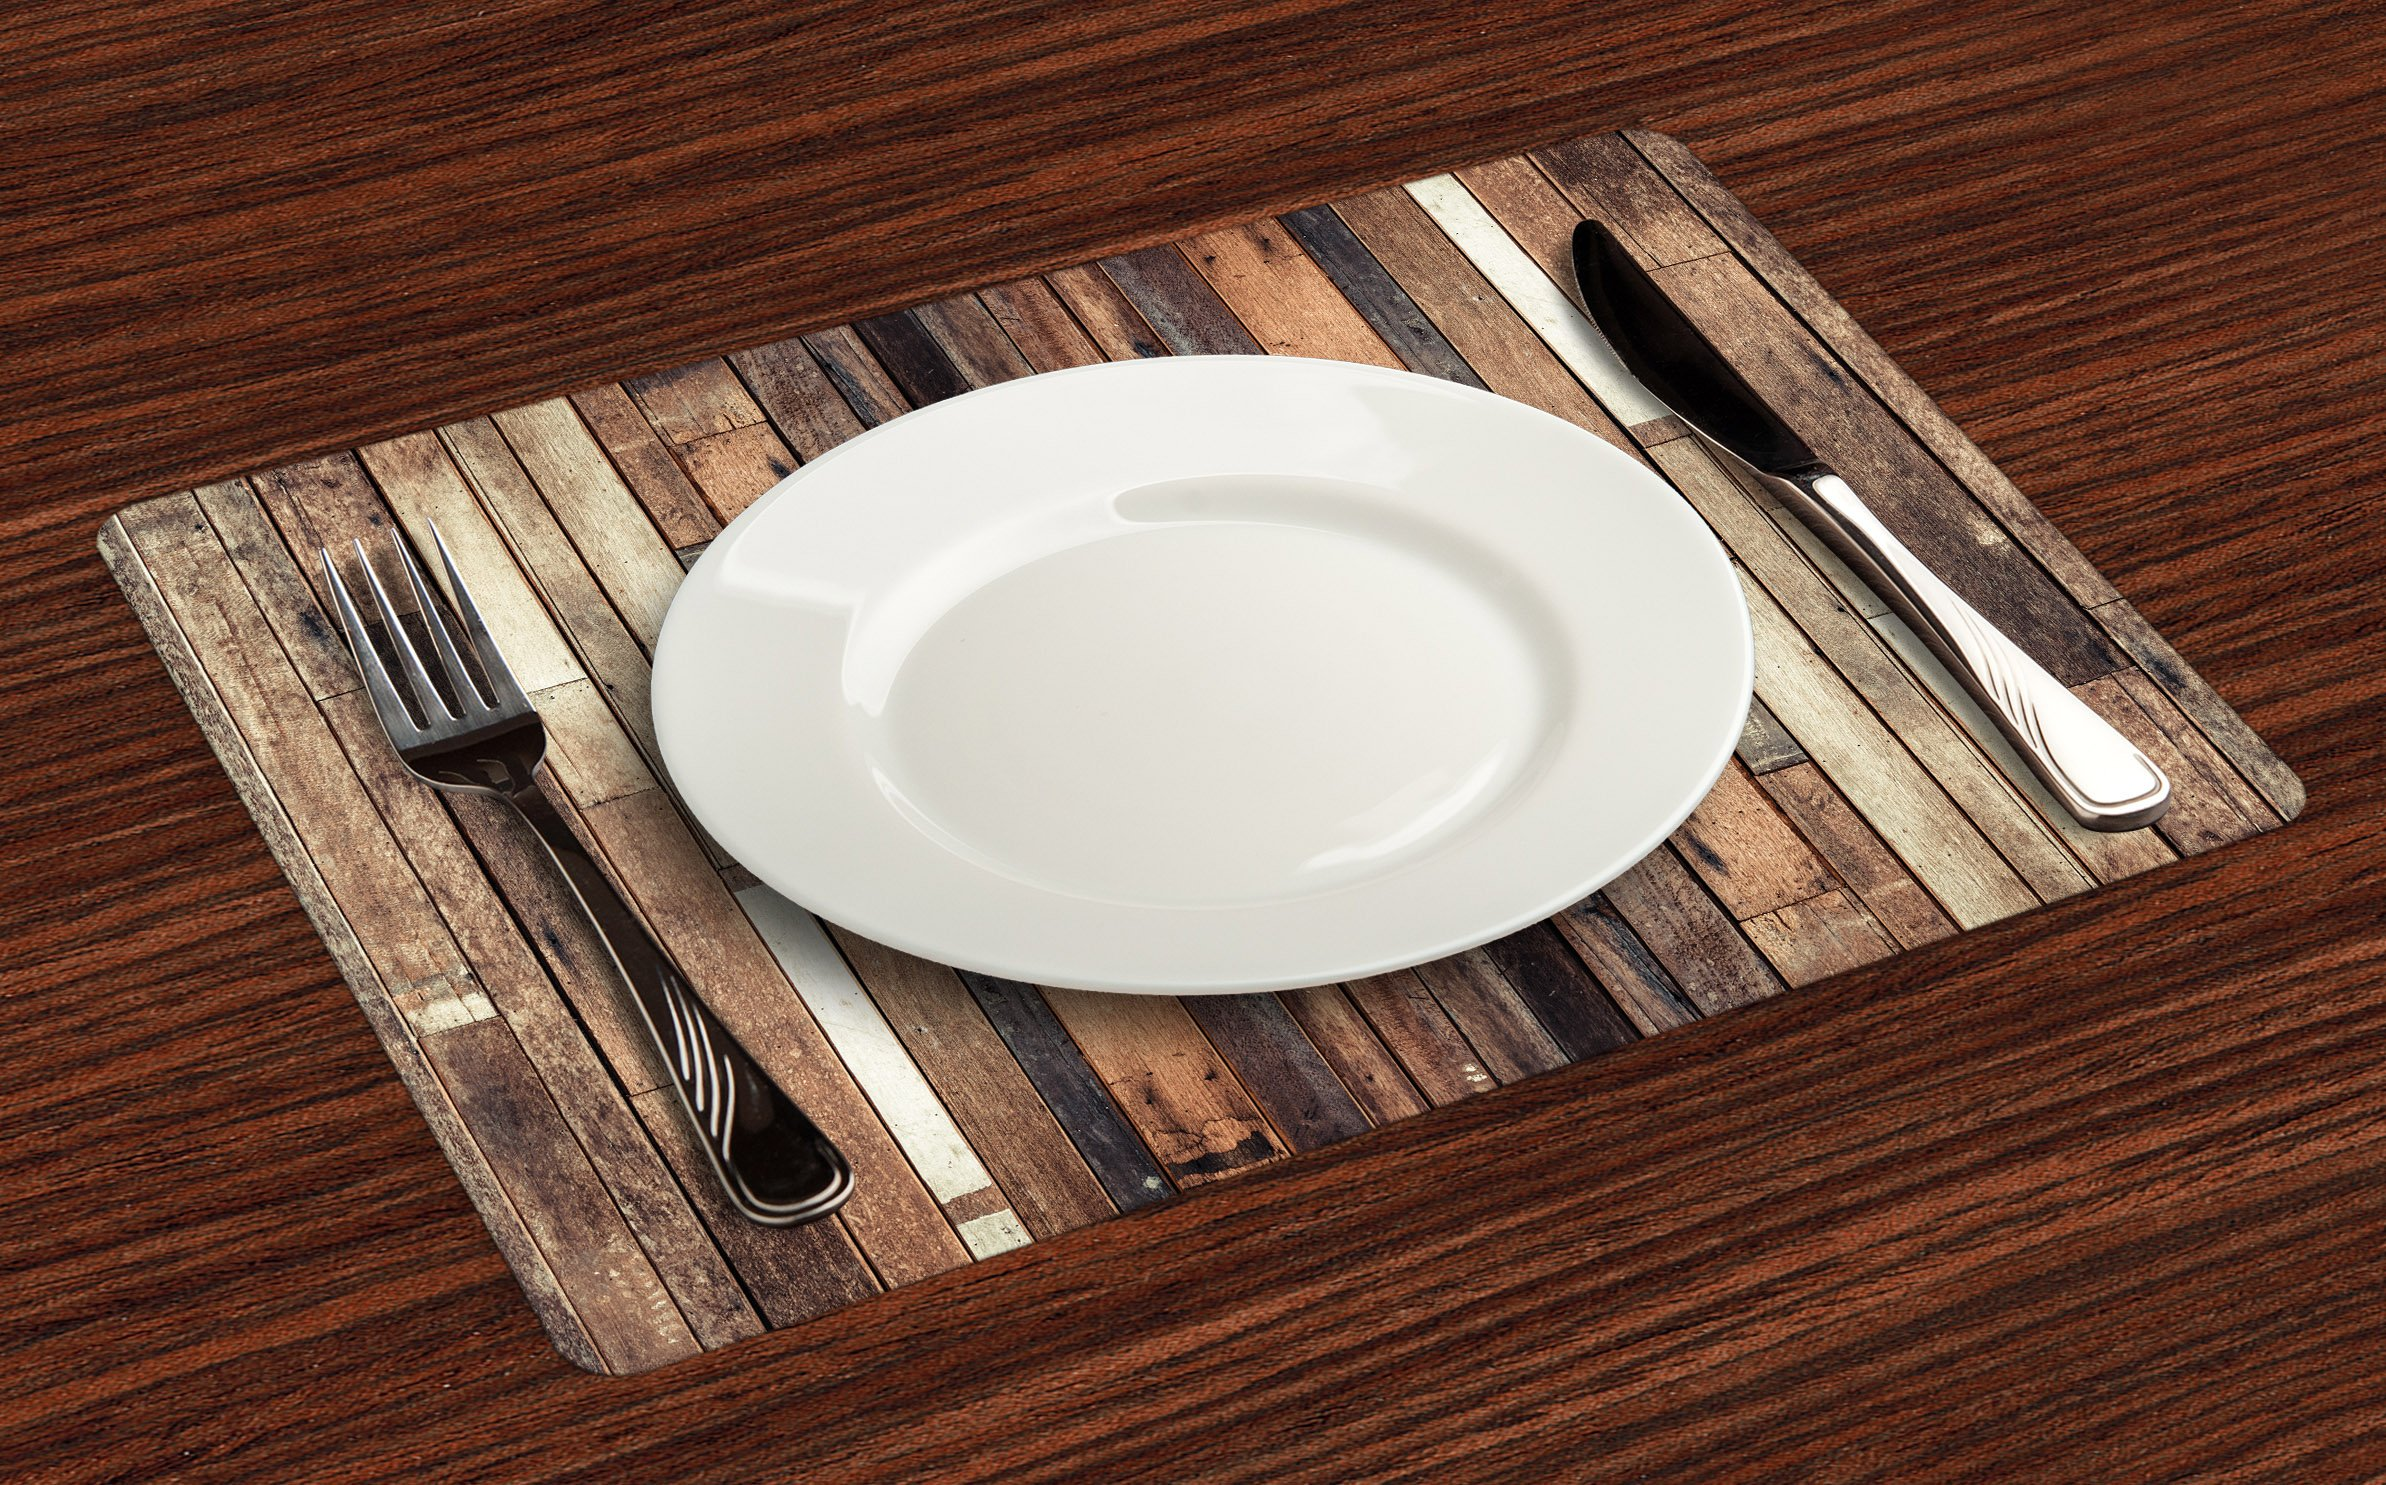 Ambesonne Wood Print Placemats Set of 4, Brown Old Hardwood Floor Plank Grunge Lodge Garage Loft Natural Rural Graphic Artsy Print, Washable Fabric Placemats for Dining Room Kitchen Table Decor, Brown by Ambesonne (Image #2)